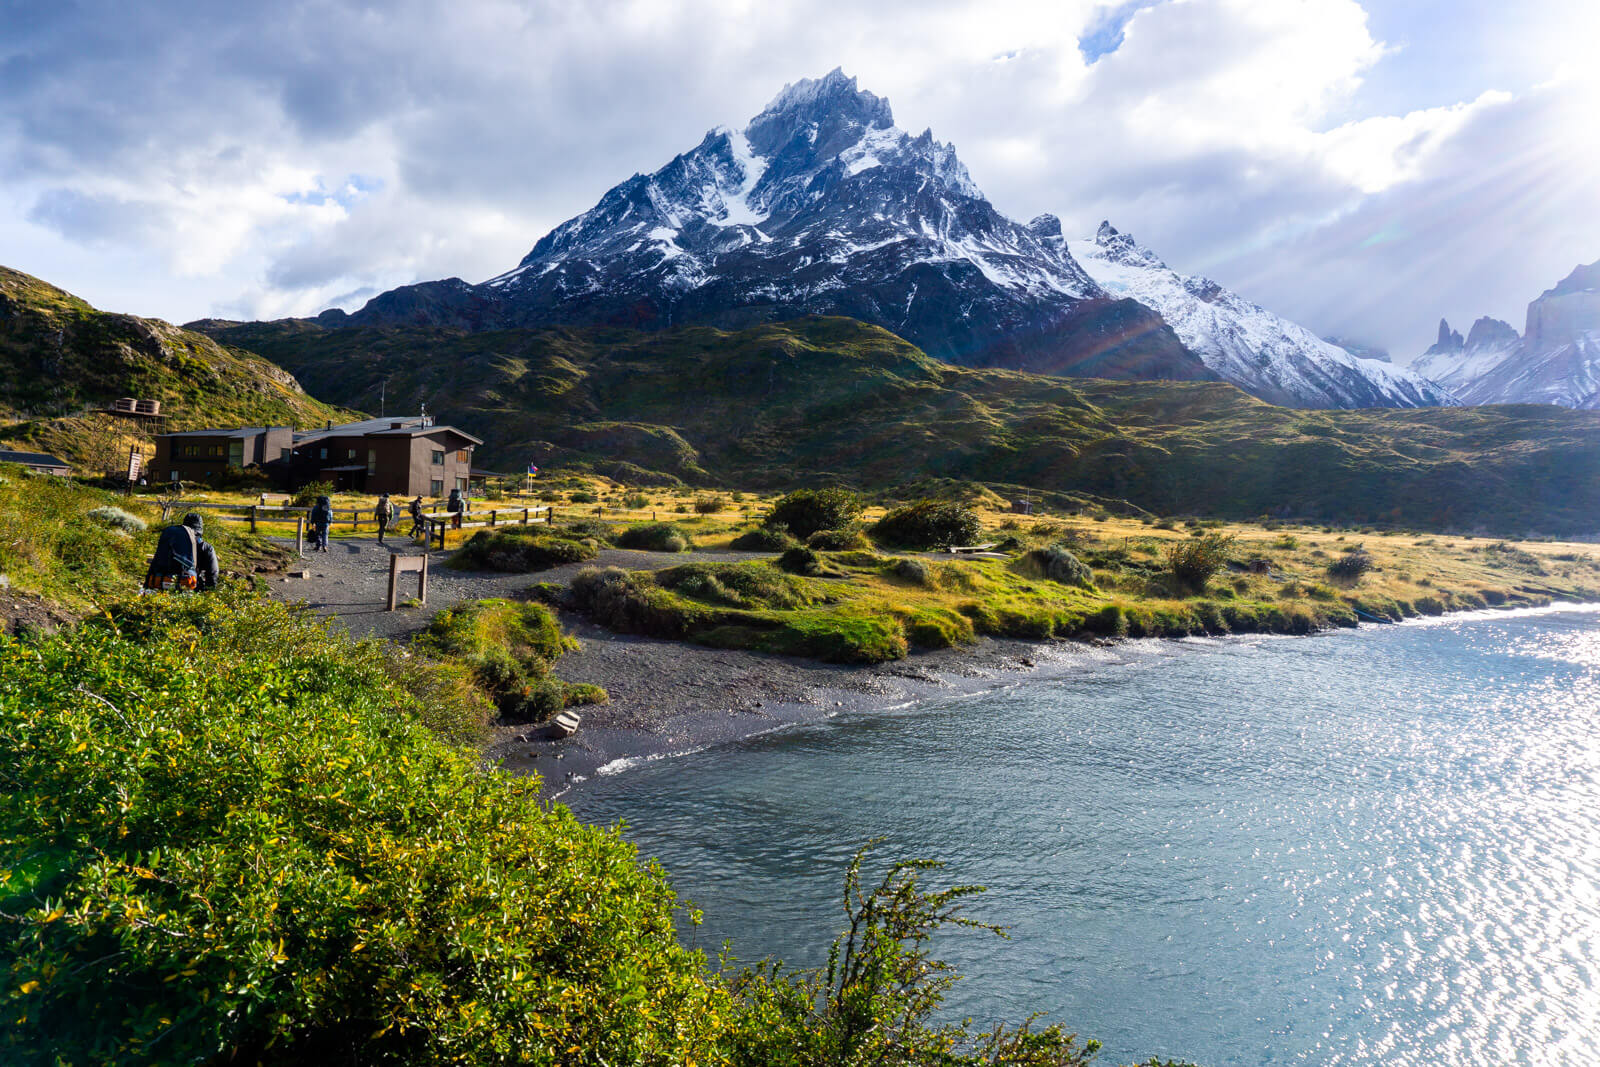 The Paine Grande Refugio and Camping